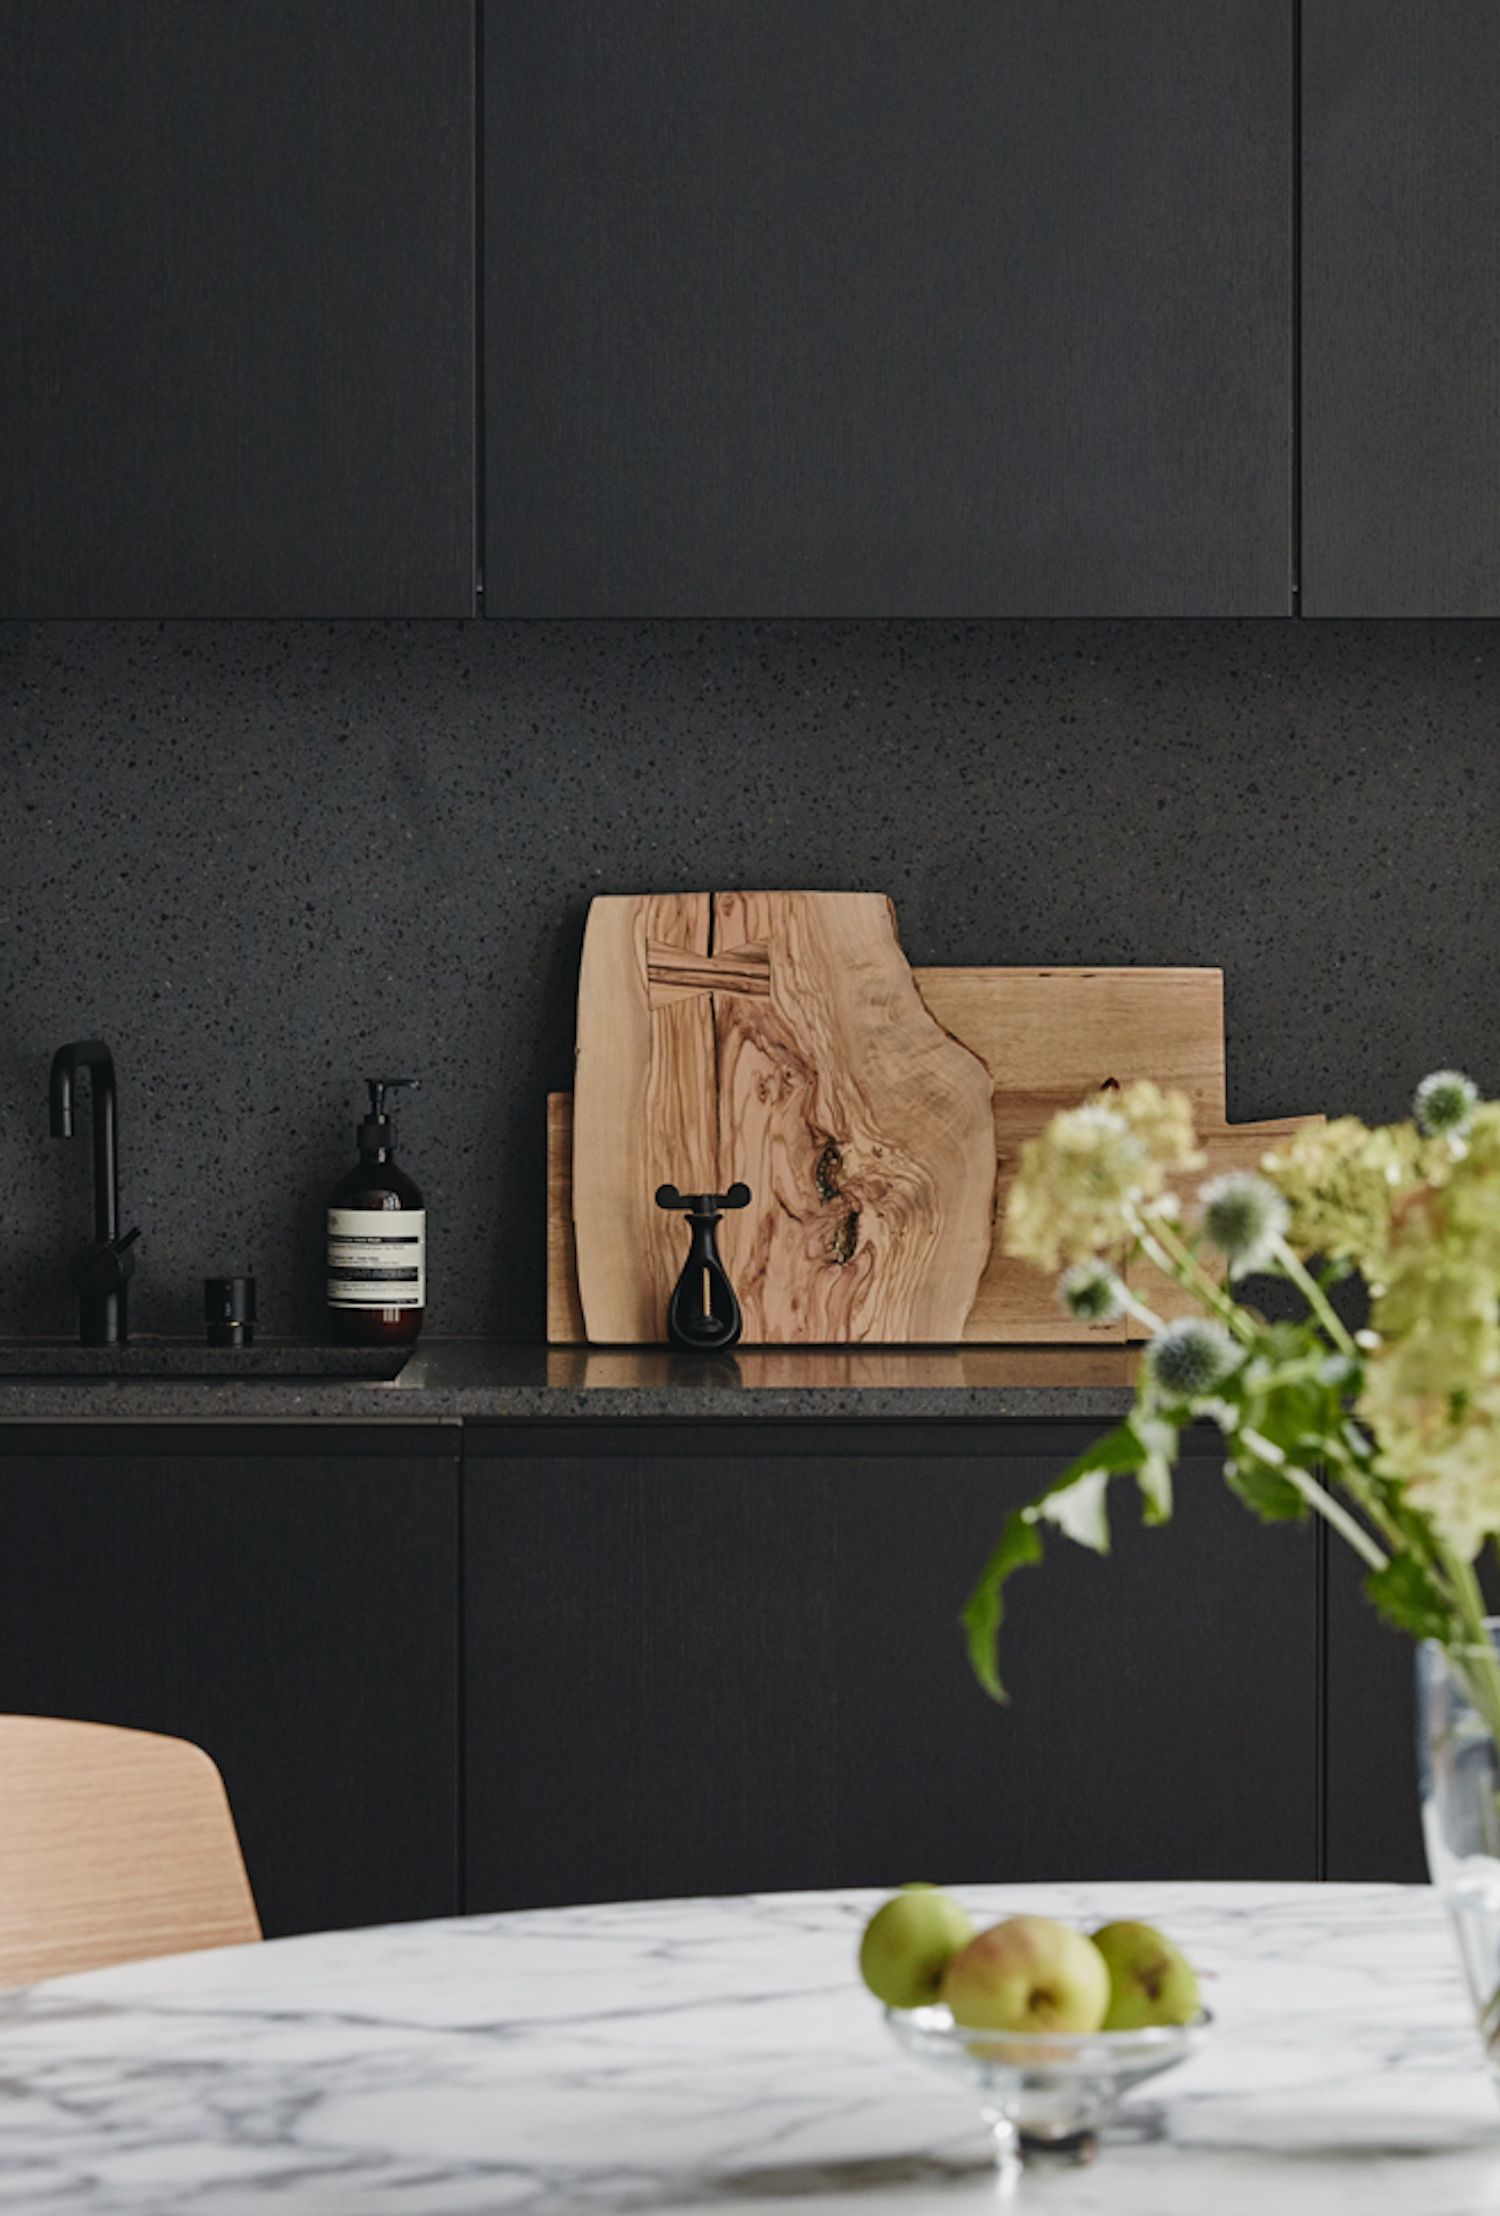 Painting It Black Matte Black Cabinetry Stone Counter And Splash